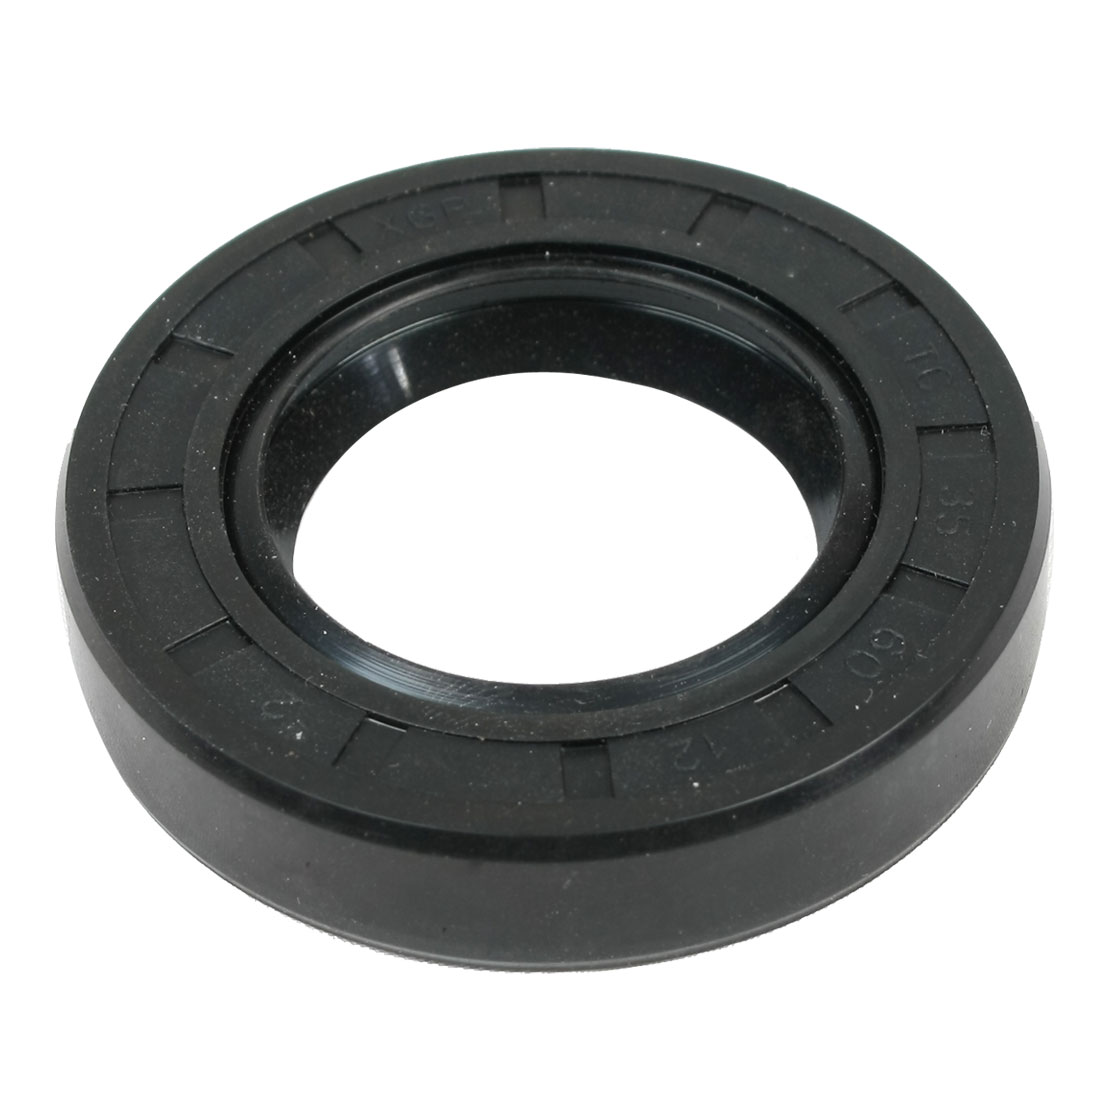 Automobile Pneumatic Seal Rubber Air Sealing Ring Black 35mm x 60mm x 12mm